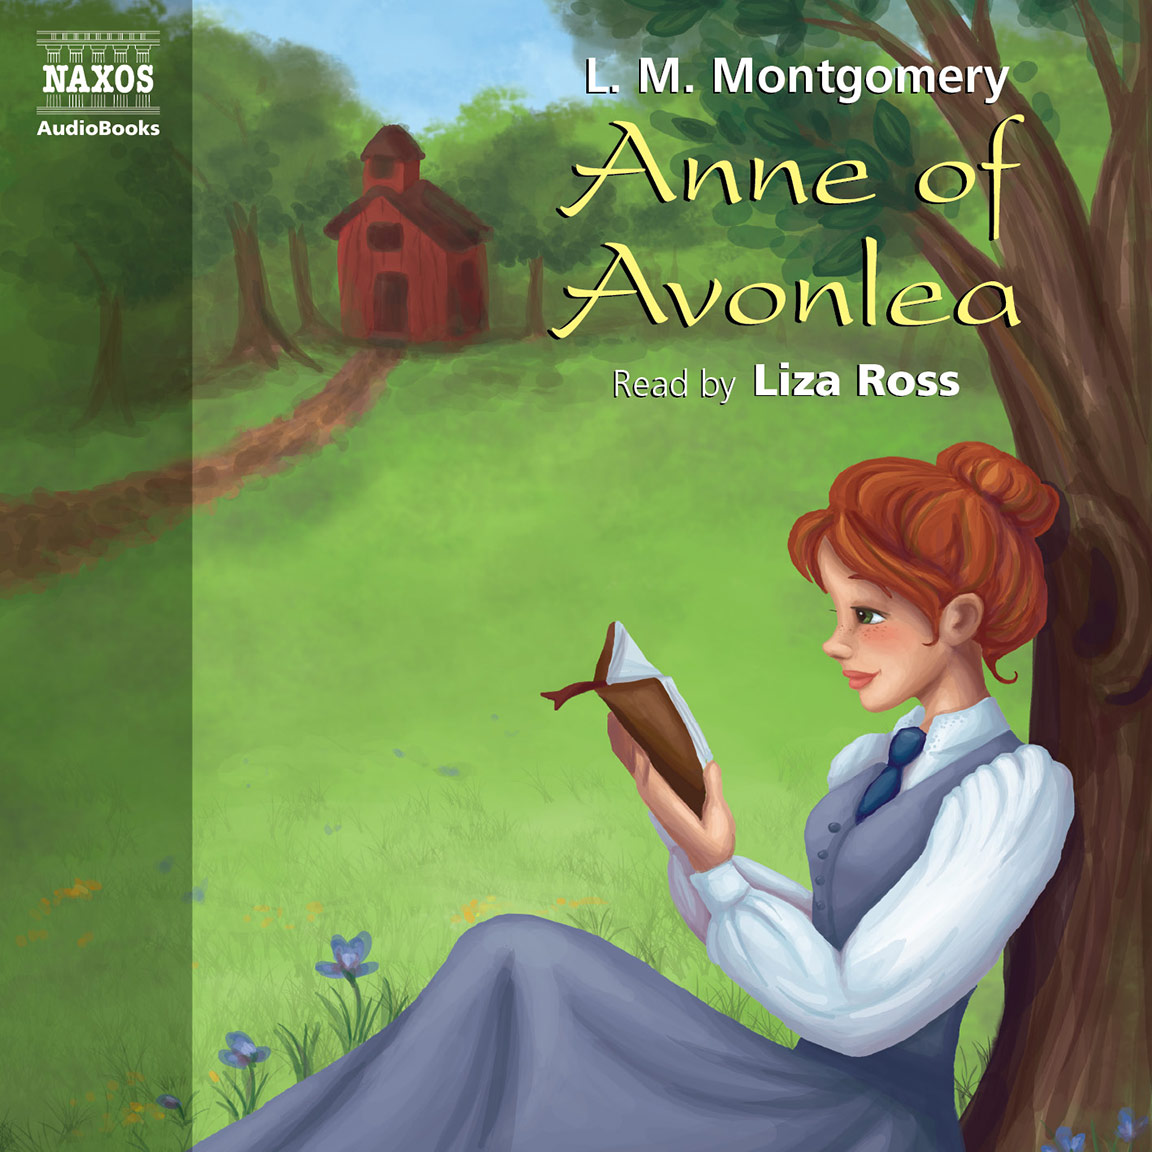 Anne of Avonlea (abridged)